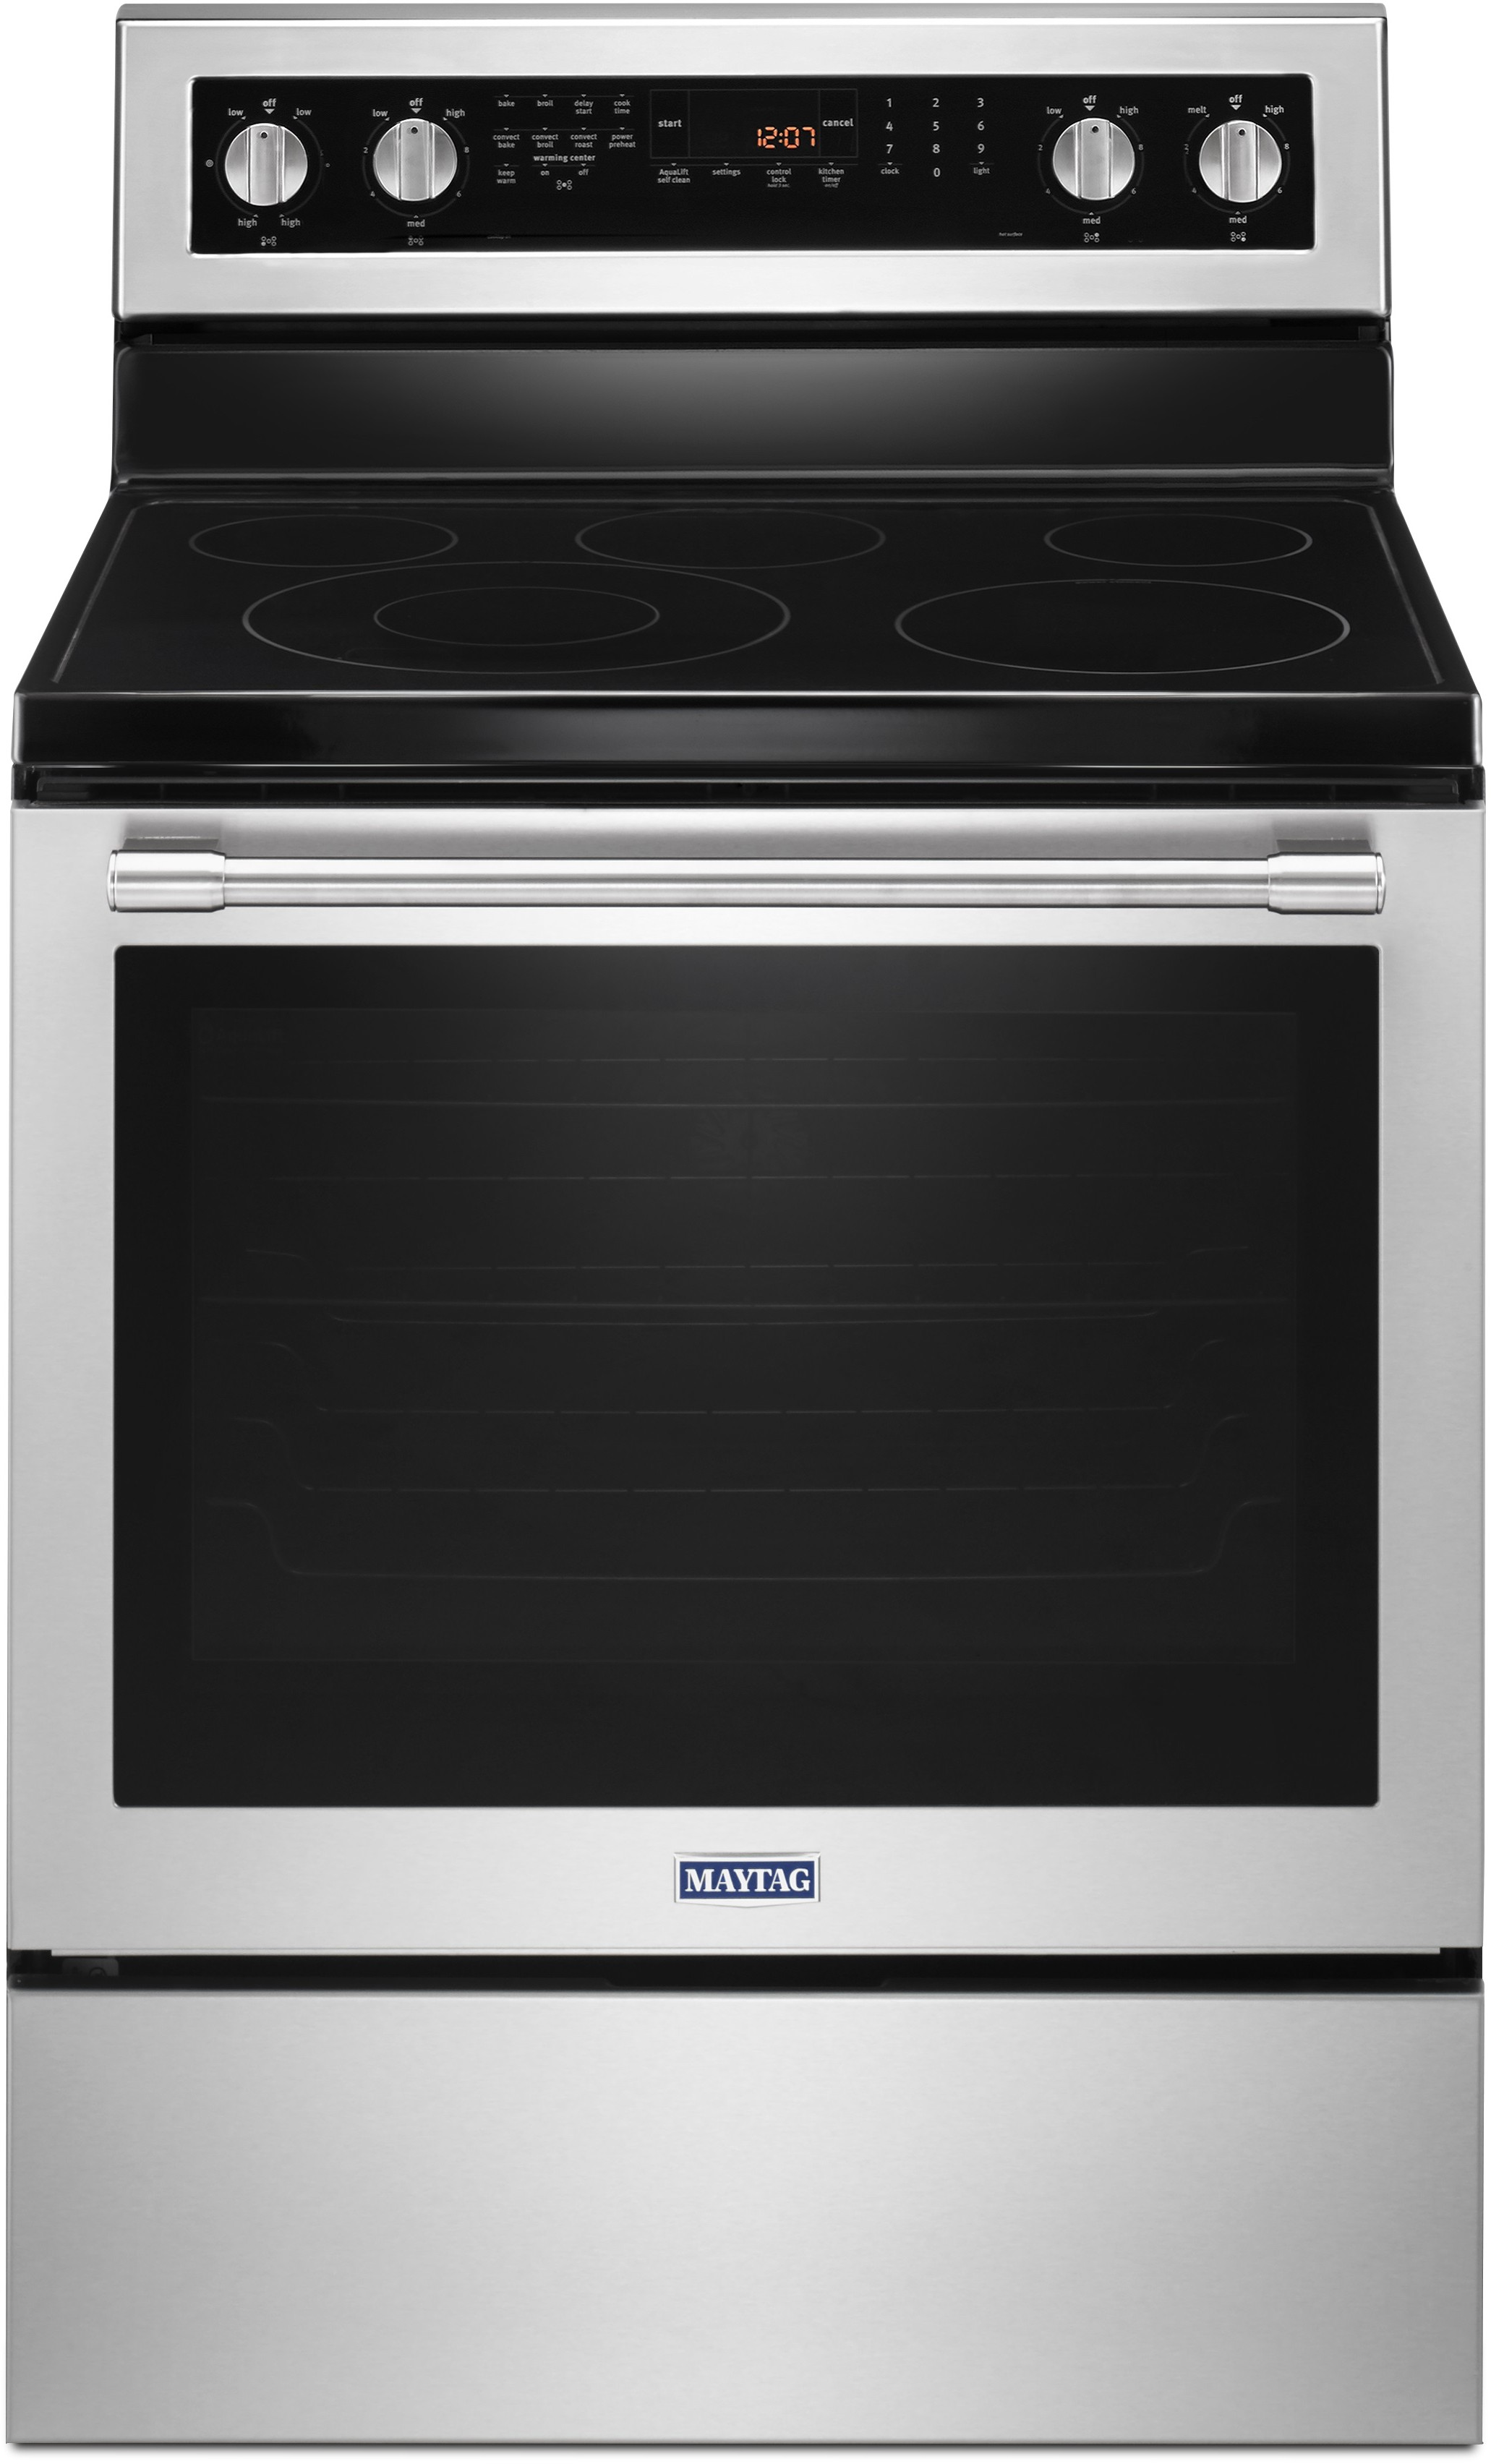 Maytag MER8800FZ 30 Inch Electric Range with Dual-Choice™ Element, Power™  Element, Power Preheat, 6.4 cu. ft. True Convection Oven, 5 Radiant Heating  ...